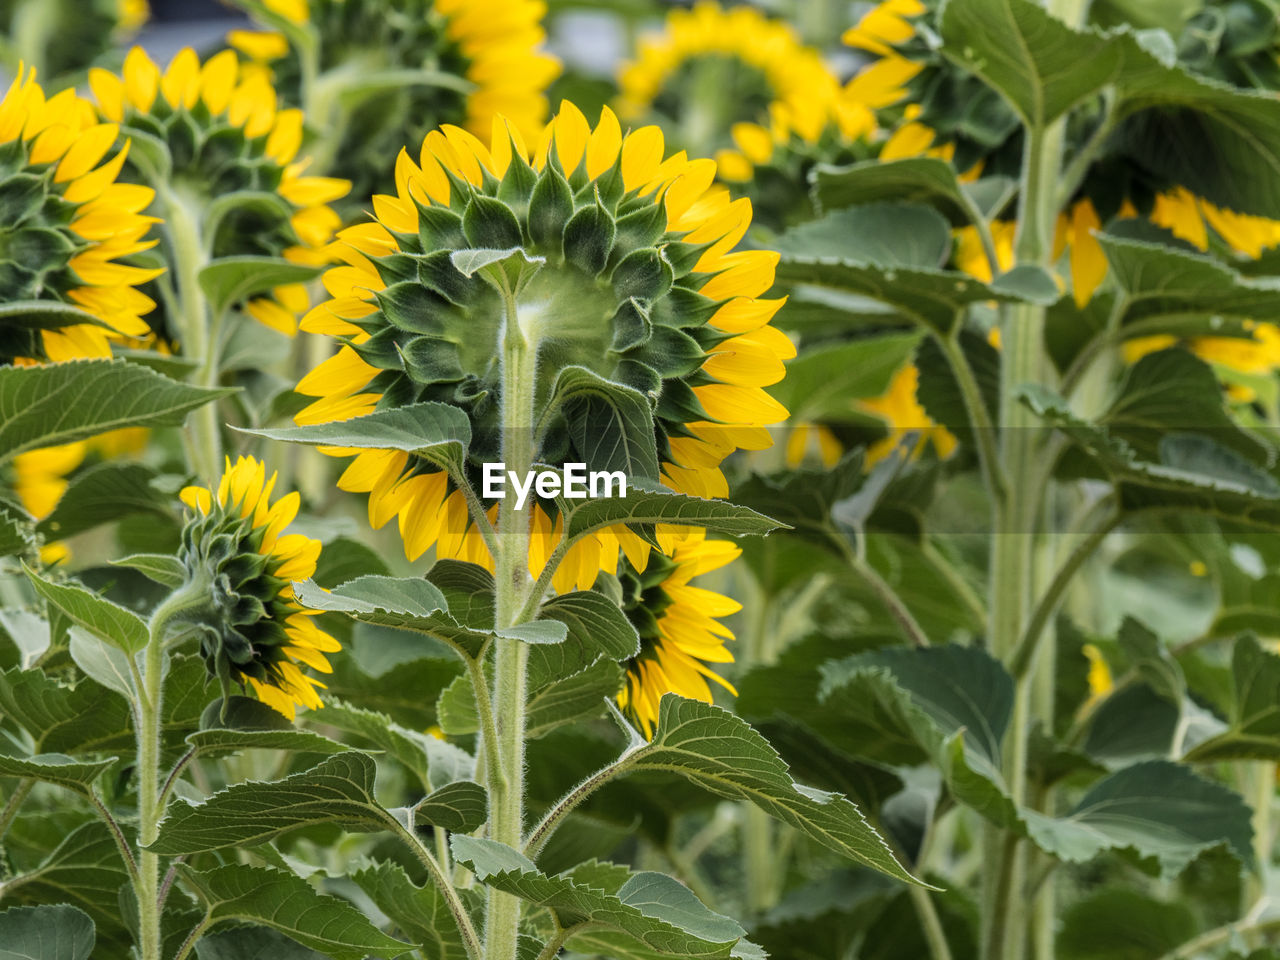 yellow, growth, plant, flower, freshness, flowering plant, beauty in nature, plant part, fragility, leaf, vulnerability, field, close-up, flower head, sunflower, green color, land, petal, nature, day, no people, outdoors